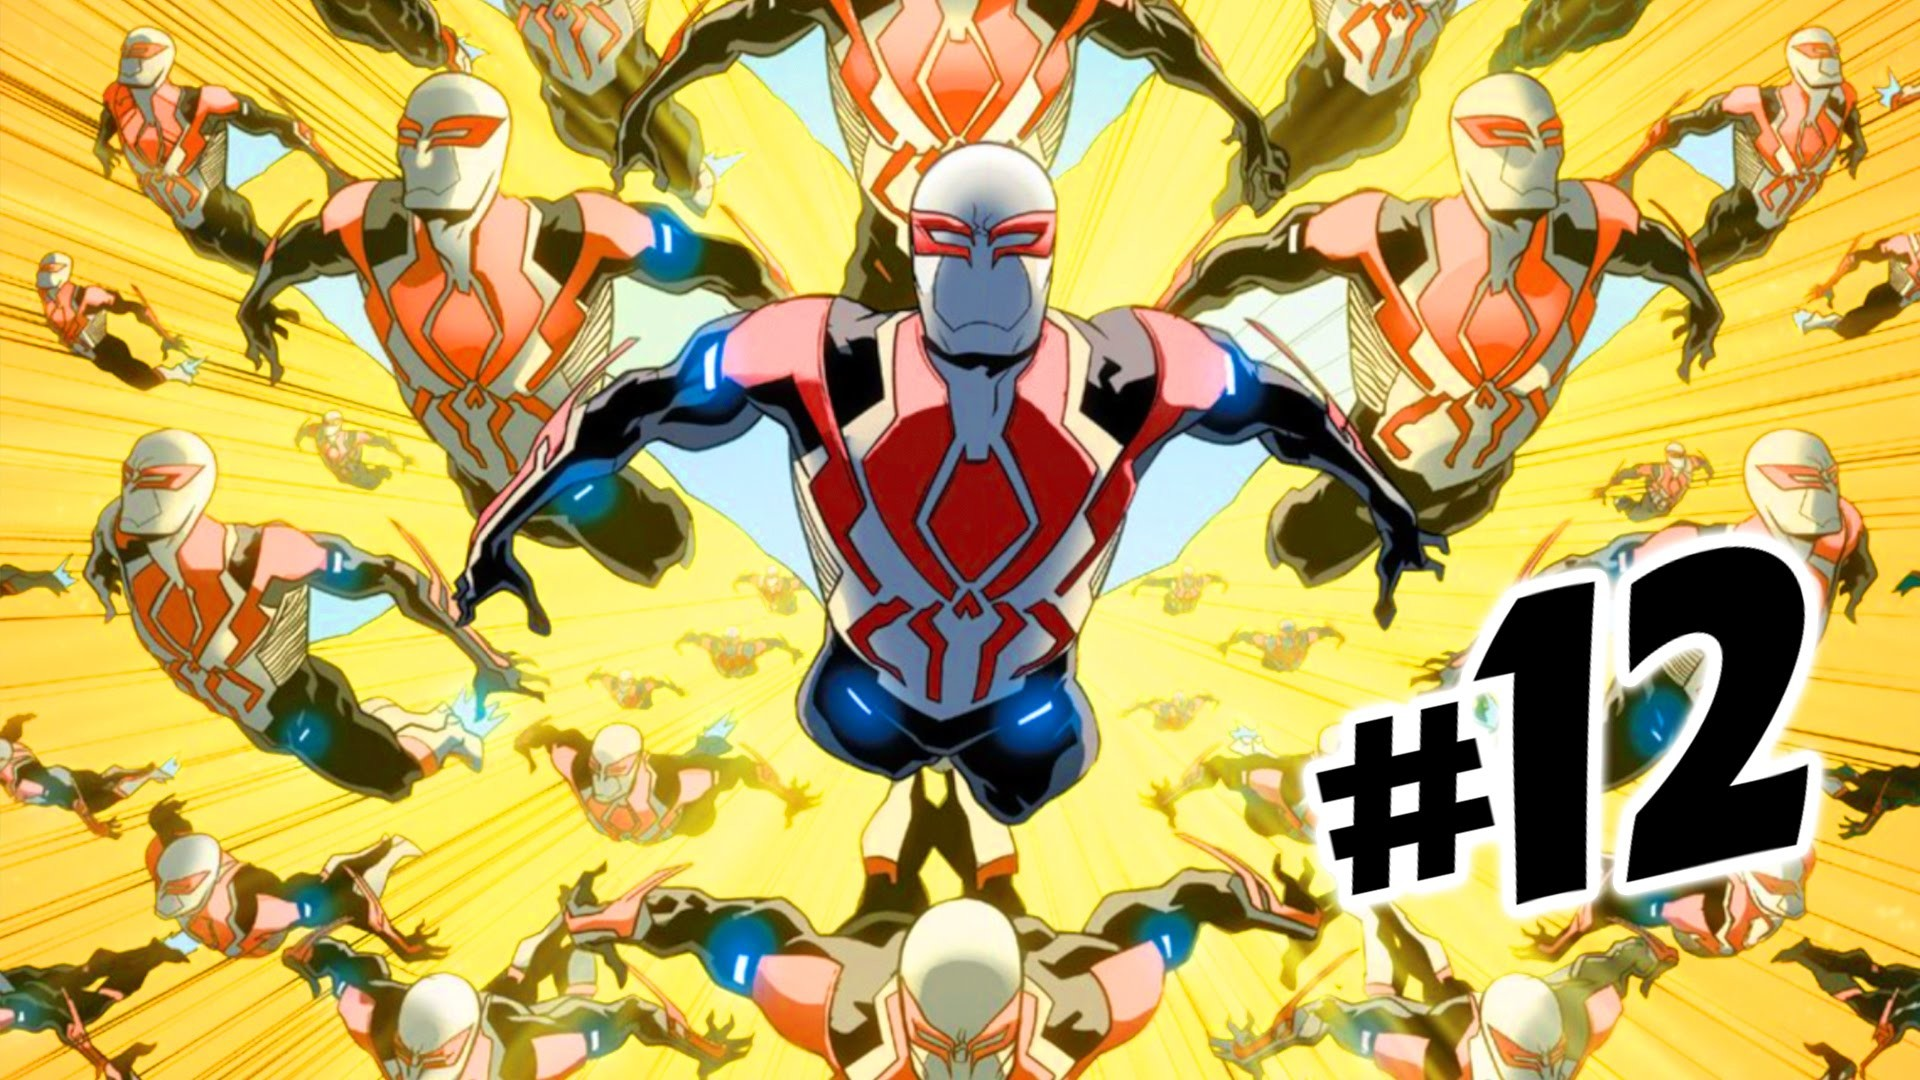 Spider-Man 2099 (All-New All-Different) Issue #12 Full Comic Review! (2016)  – YouTube